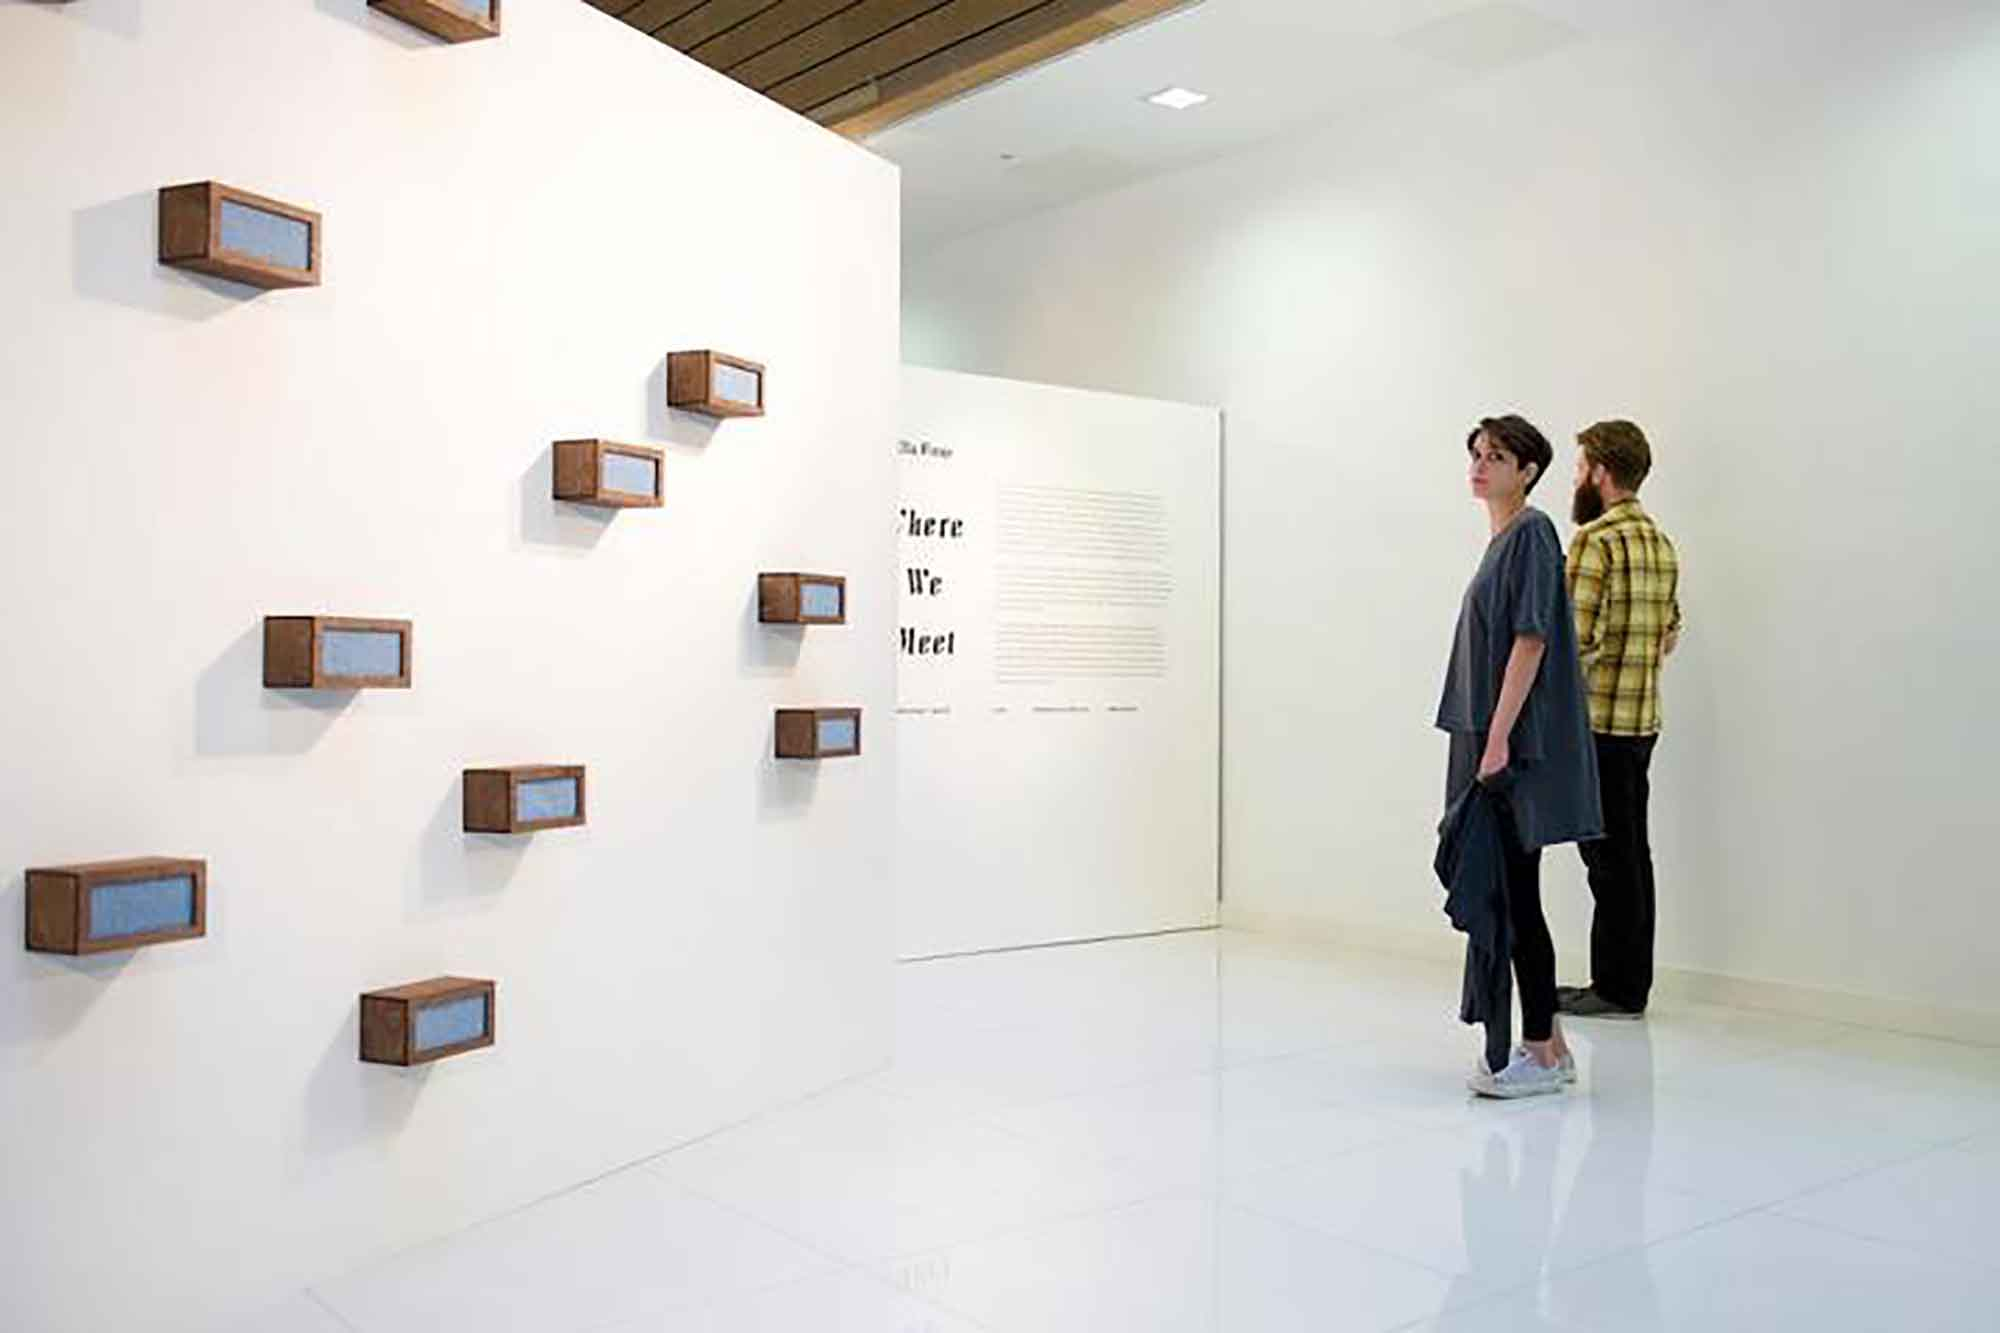 Ella Finer, Where we Meet, October 2012, Galerie8, London. Photograph Credit: Kitty Walker